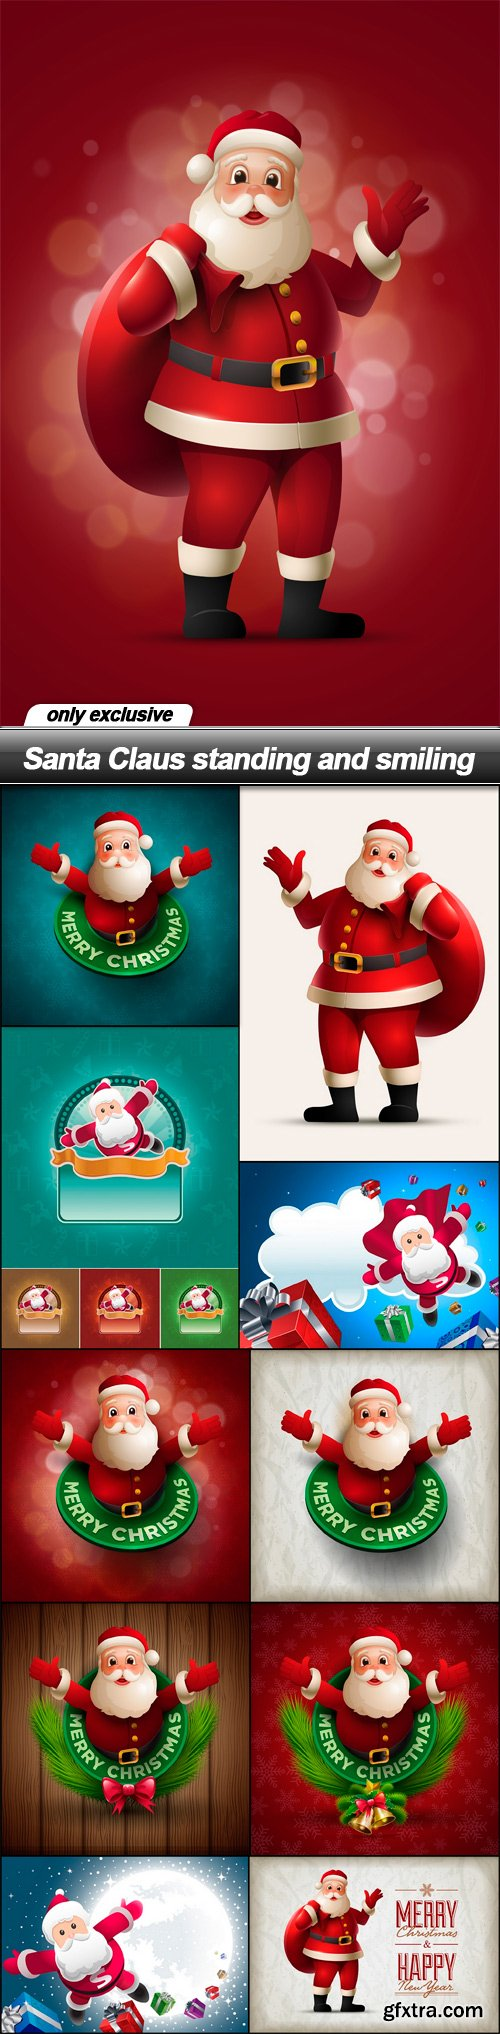 Santa Claus standing and smiling - 11 EPS